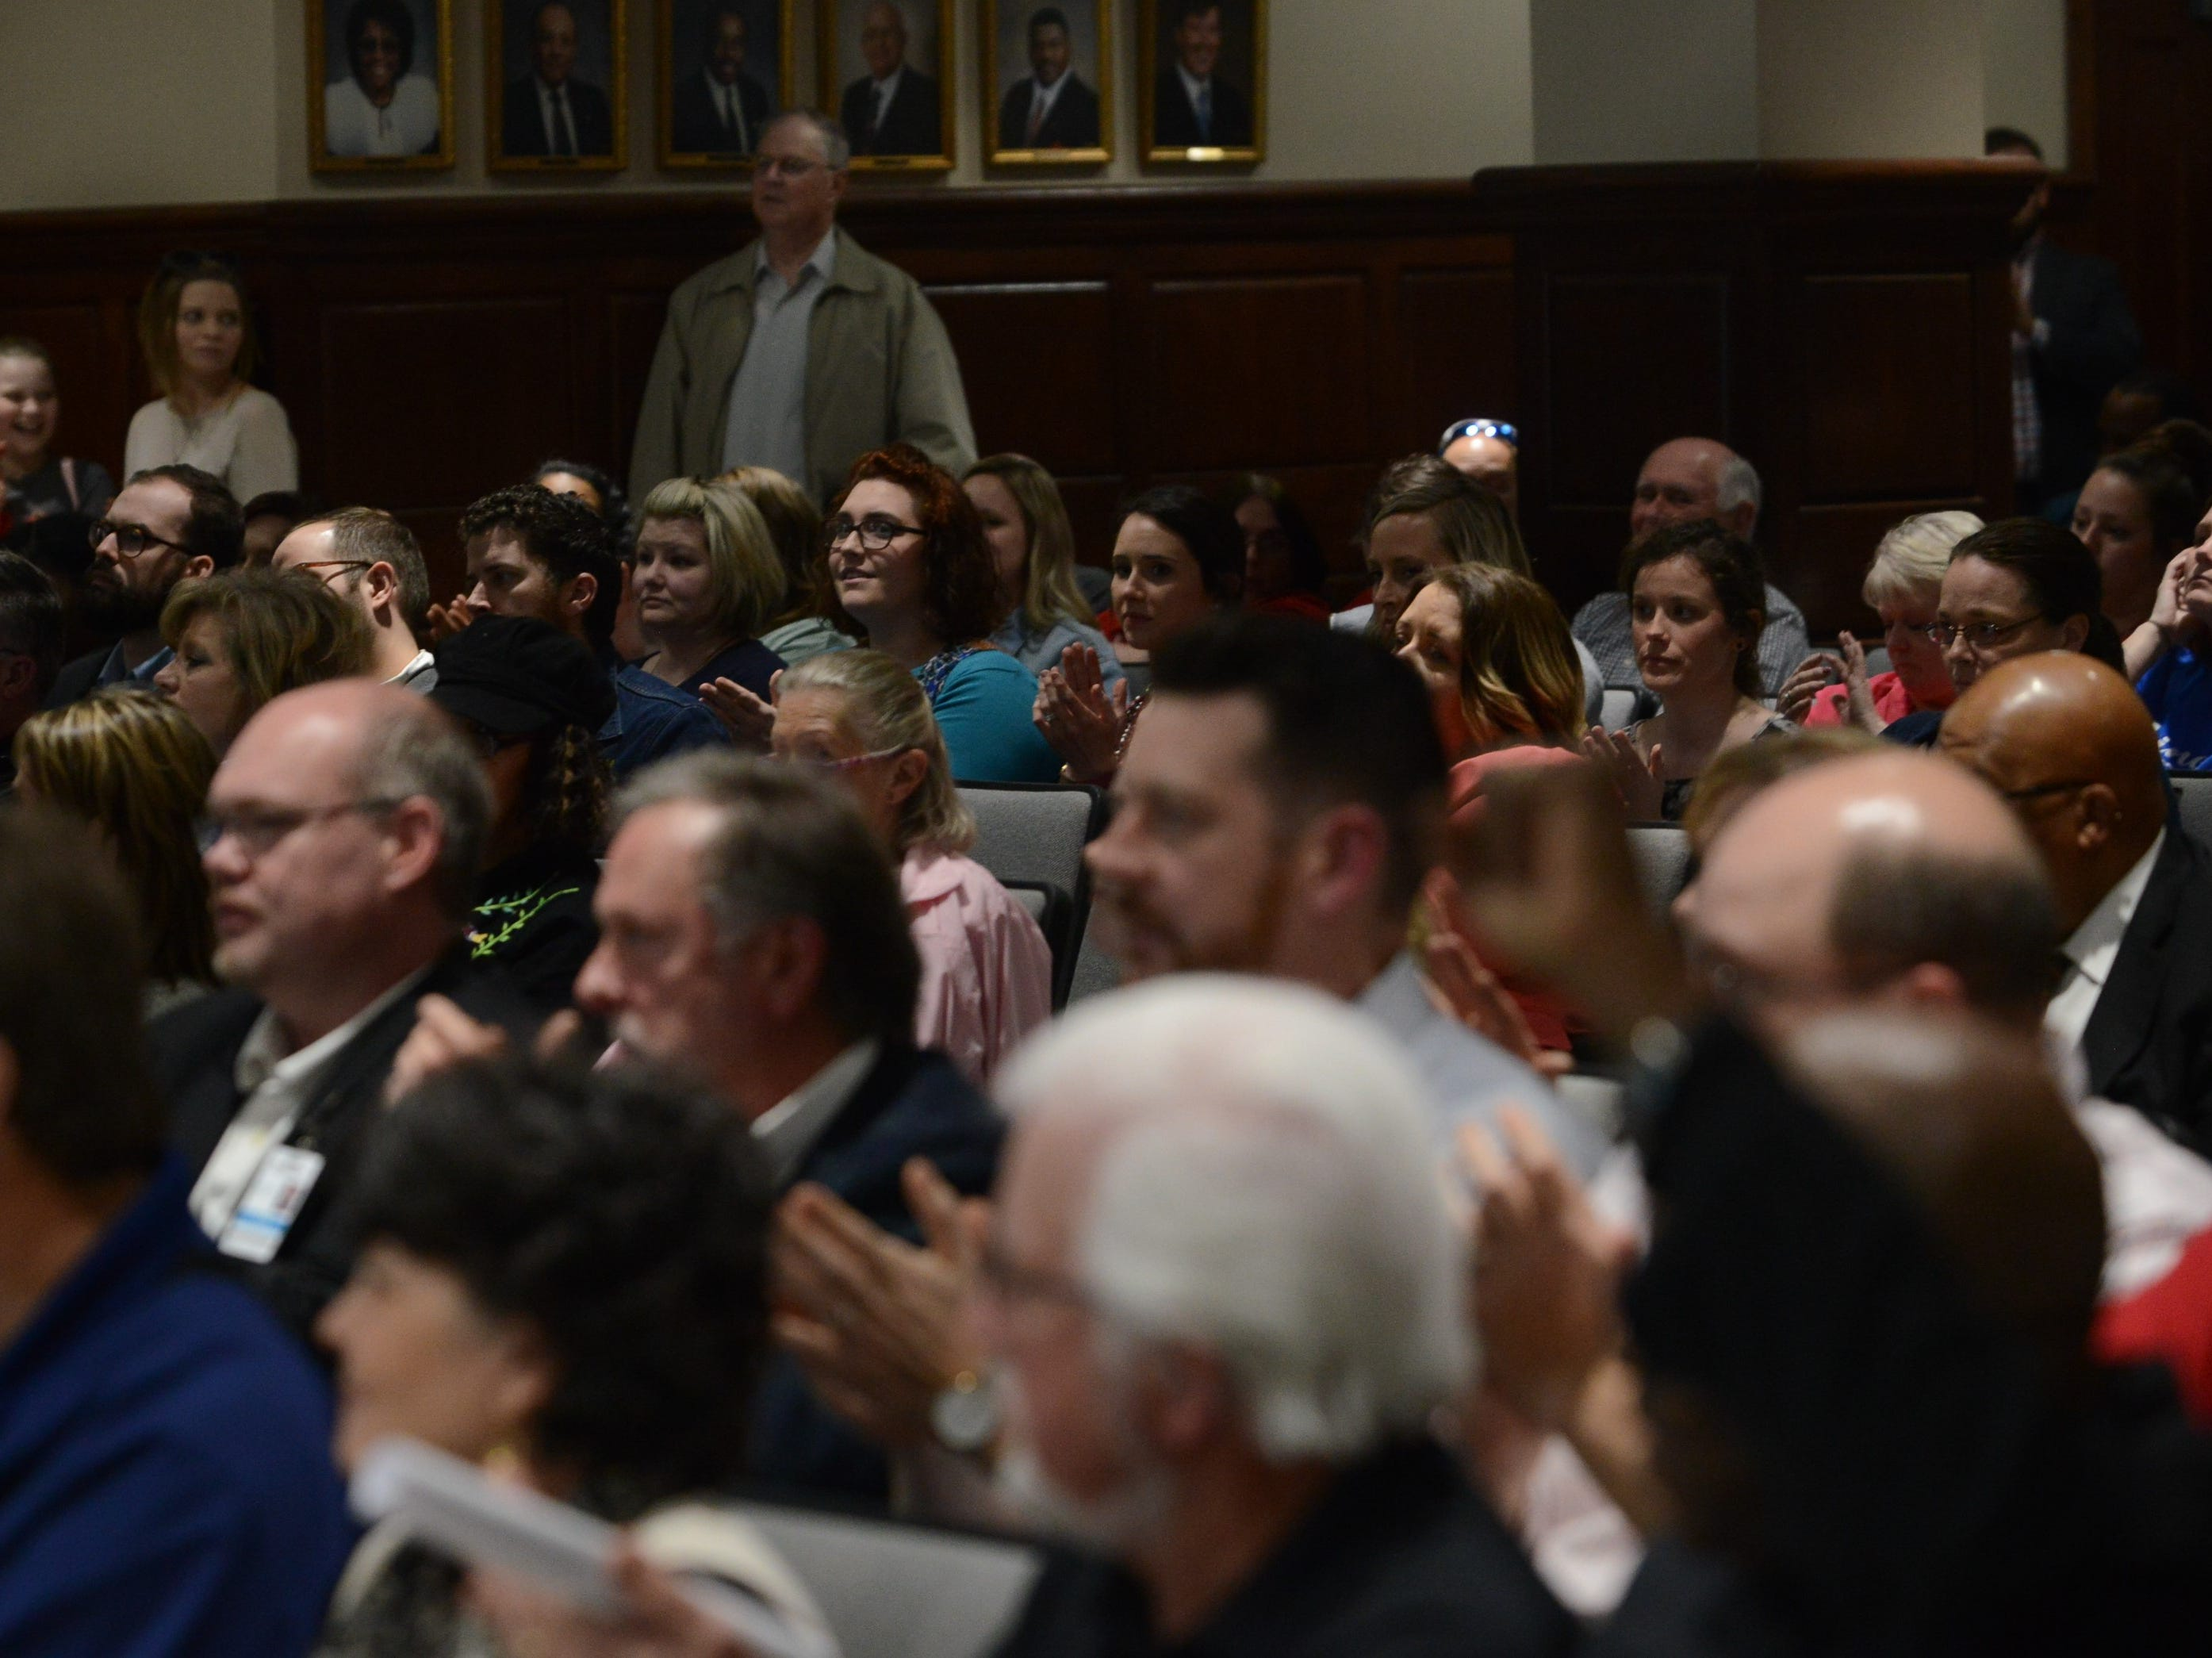 The crowd claps after as a speaker voices their public comment at the JMC school board meeting at Jackson City Hall on Thursday night.